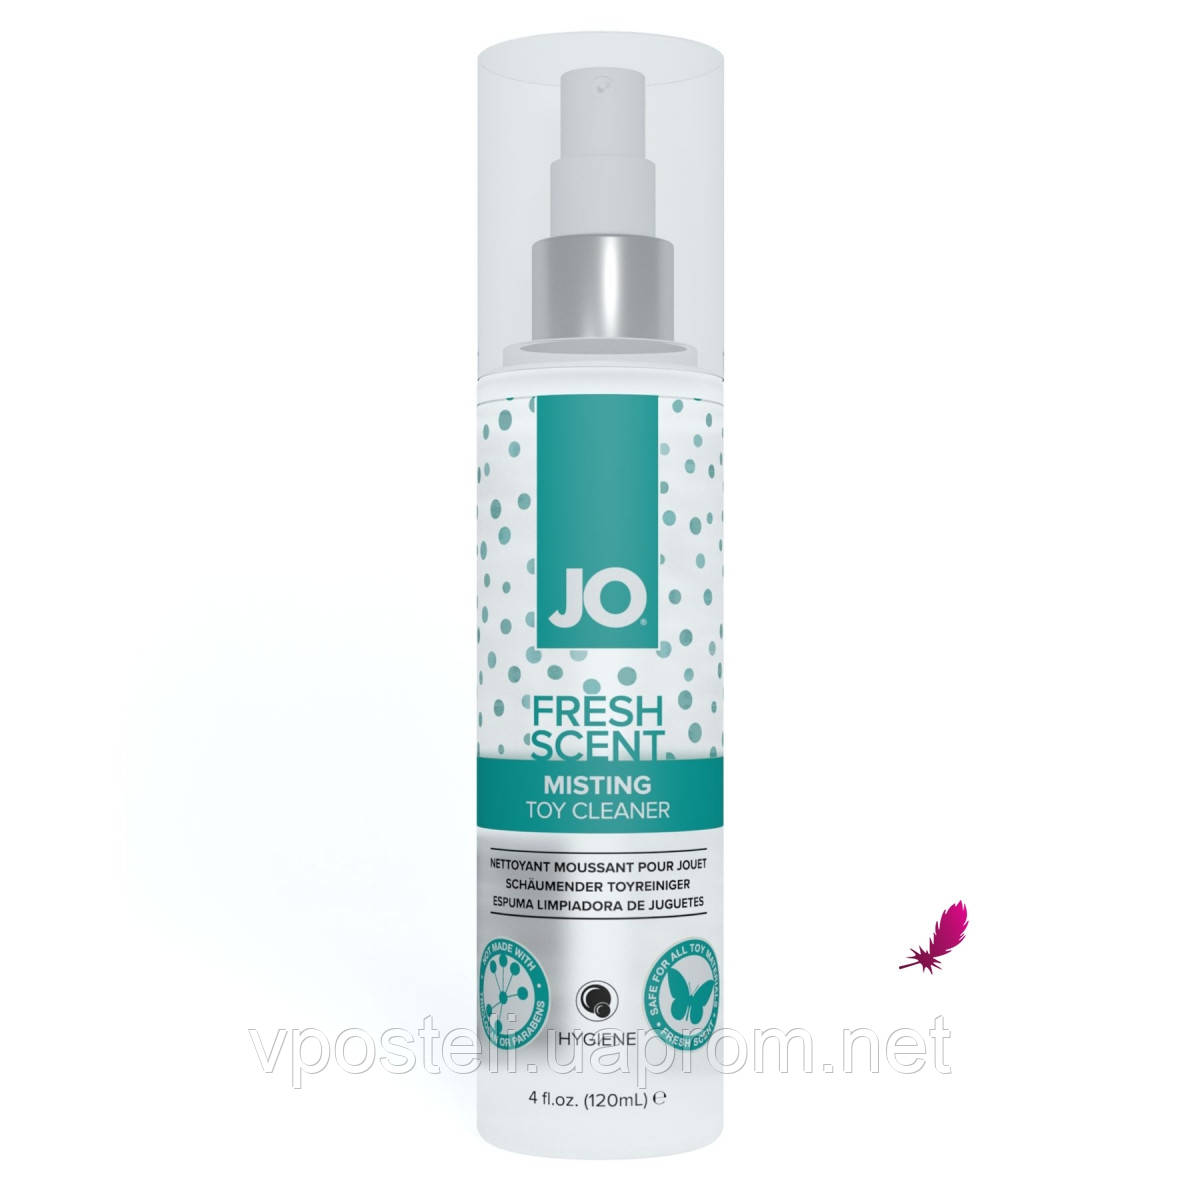 Чистячий засіб System JO Fresh Scent Misting Toy Cleaner